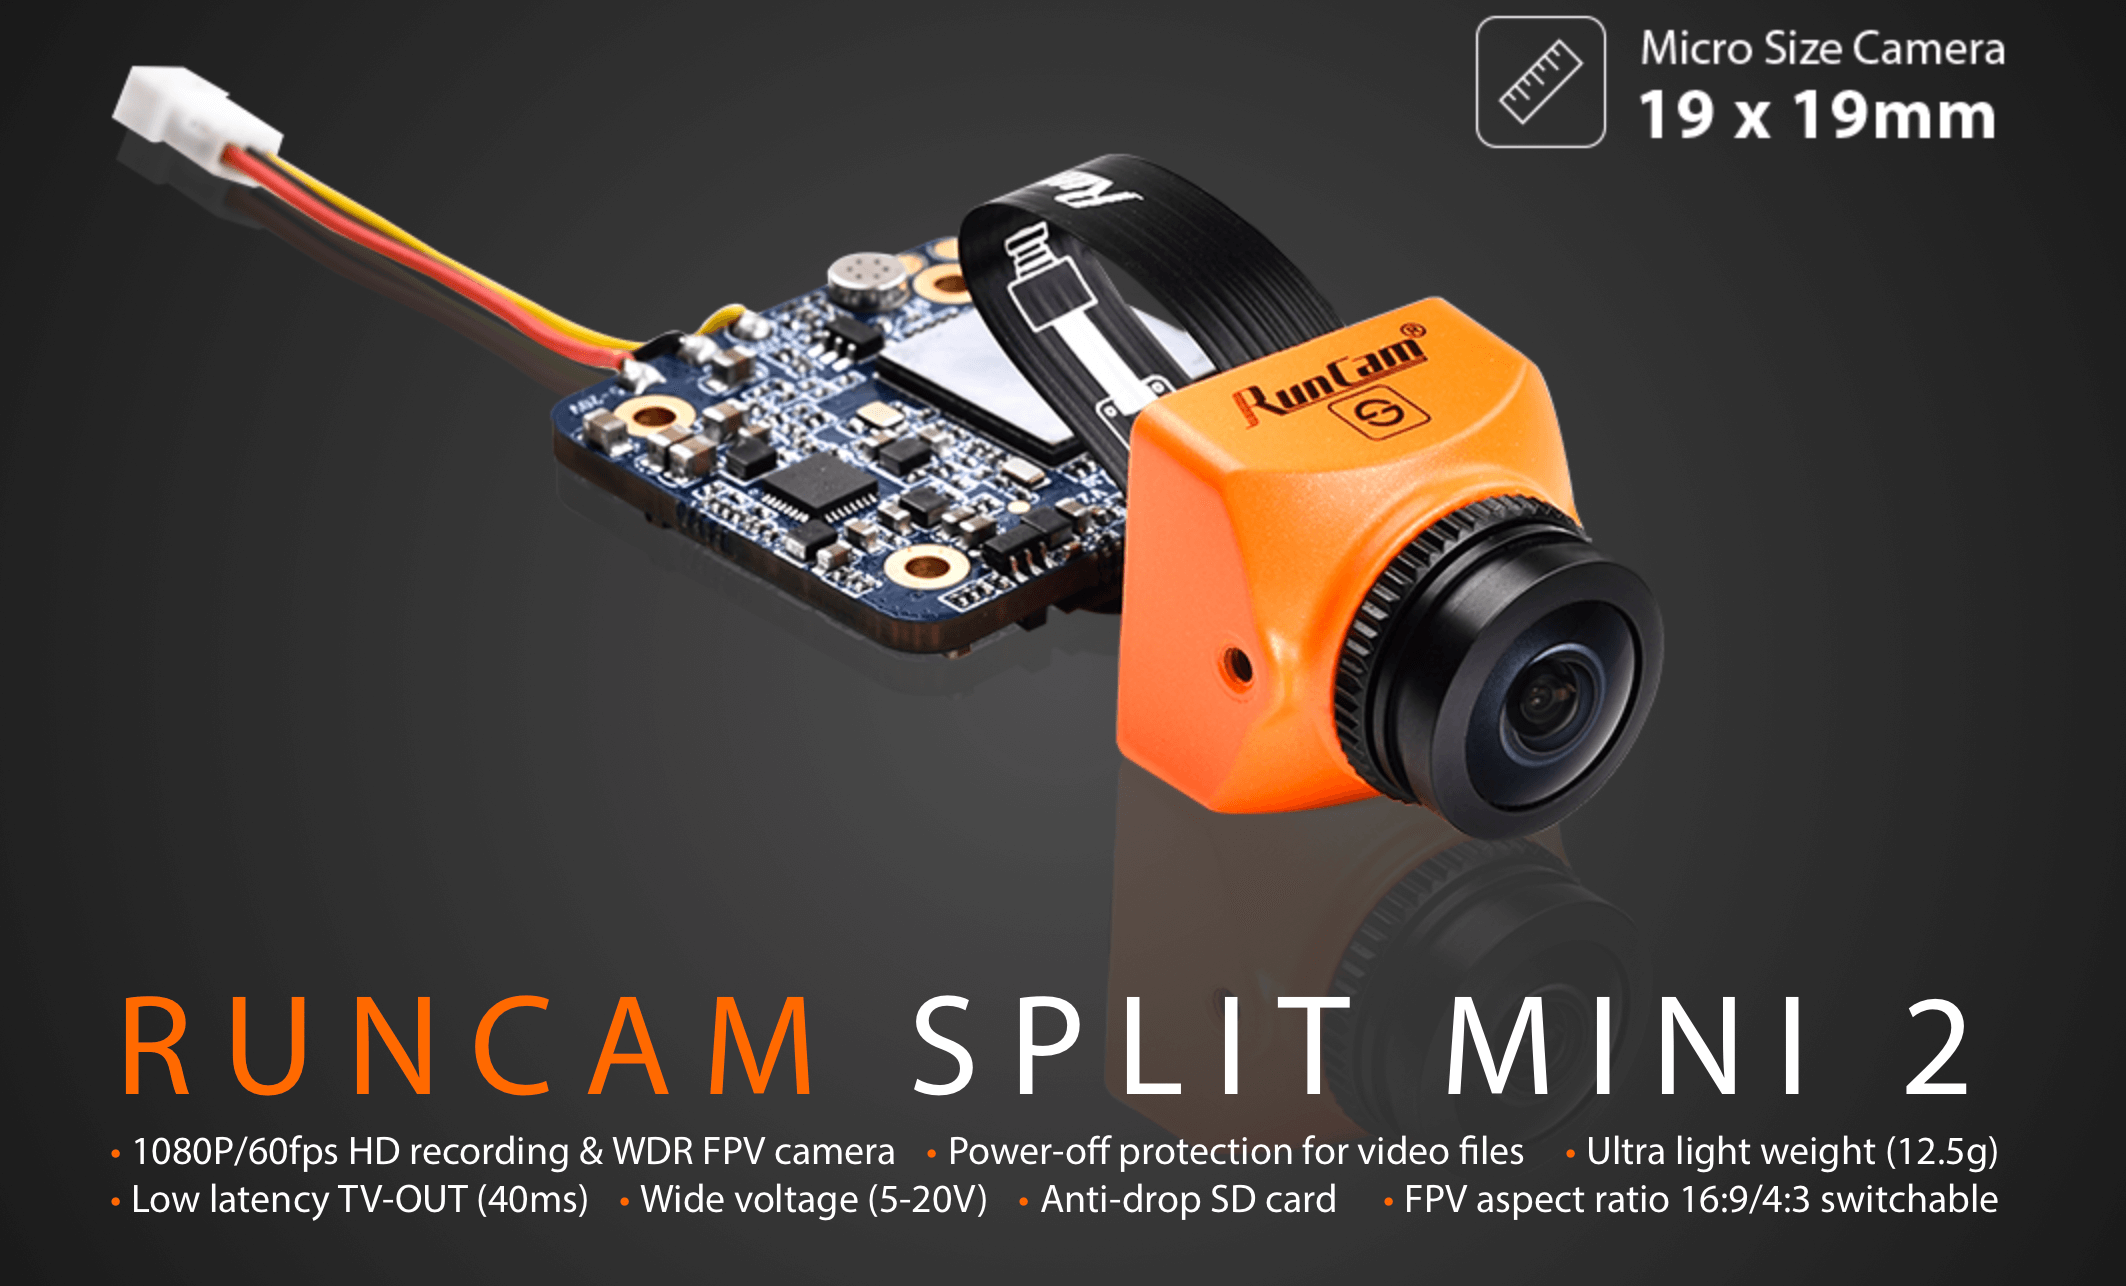 Runcam split mini 2 M12 latest version